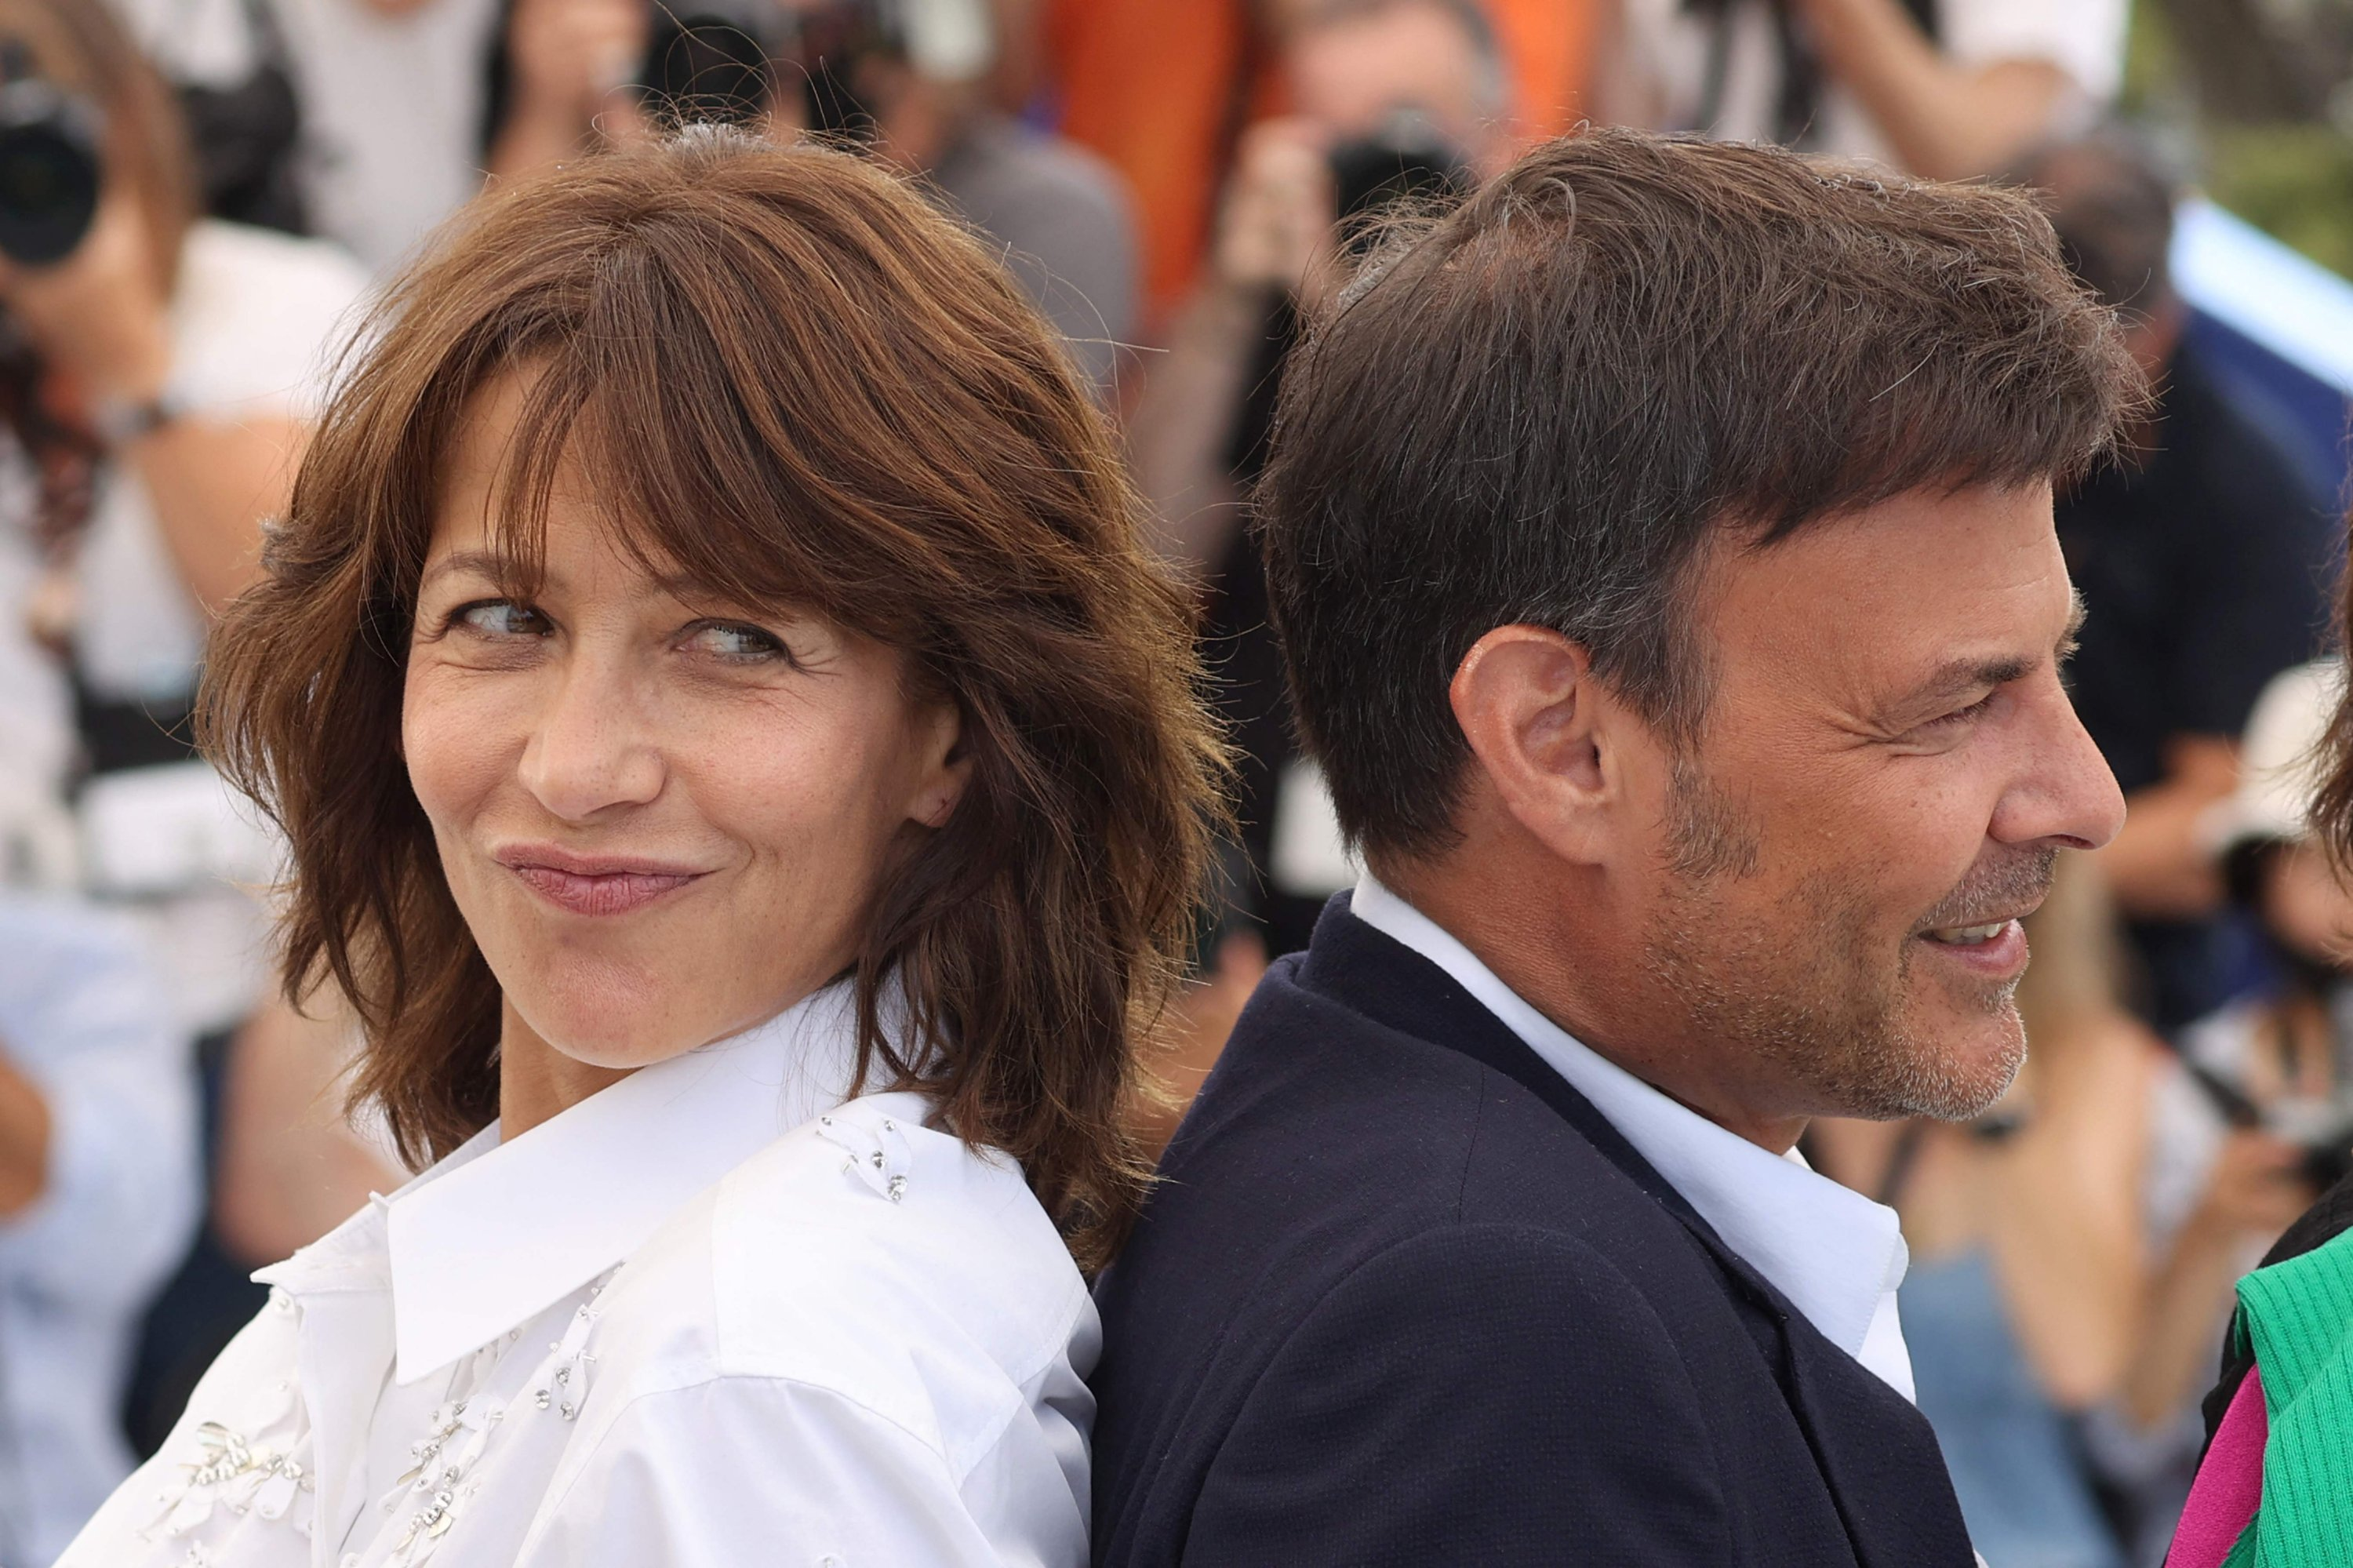 French actress Sophie Marceau (L) poses with French director Francois Ozon during a photocall for the film 'Tout s'est Bien Passe' ('Everything Went Fine') at the 74th edition of the Cannes Film Festival in Cannes, southern France, July 8, 2021. (AFP Photo)